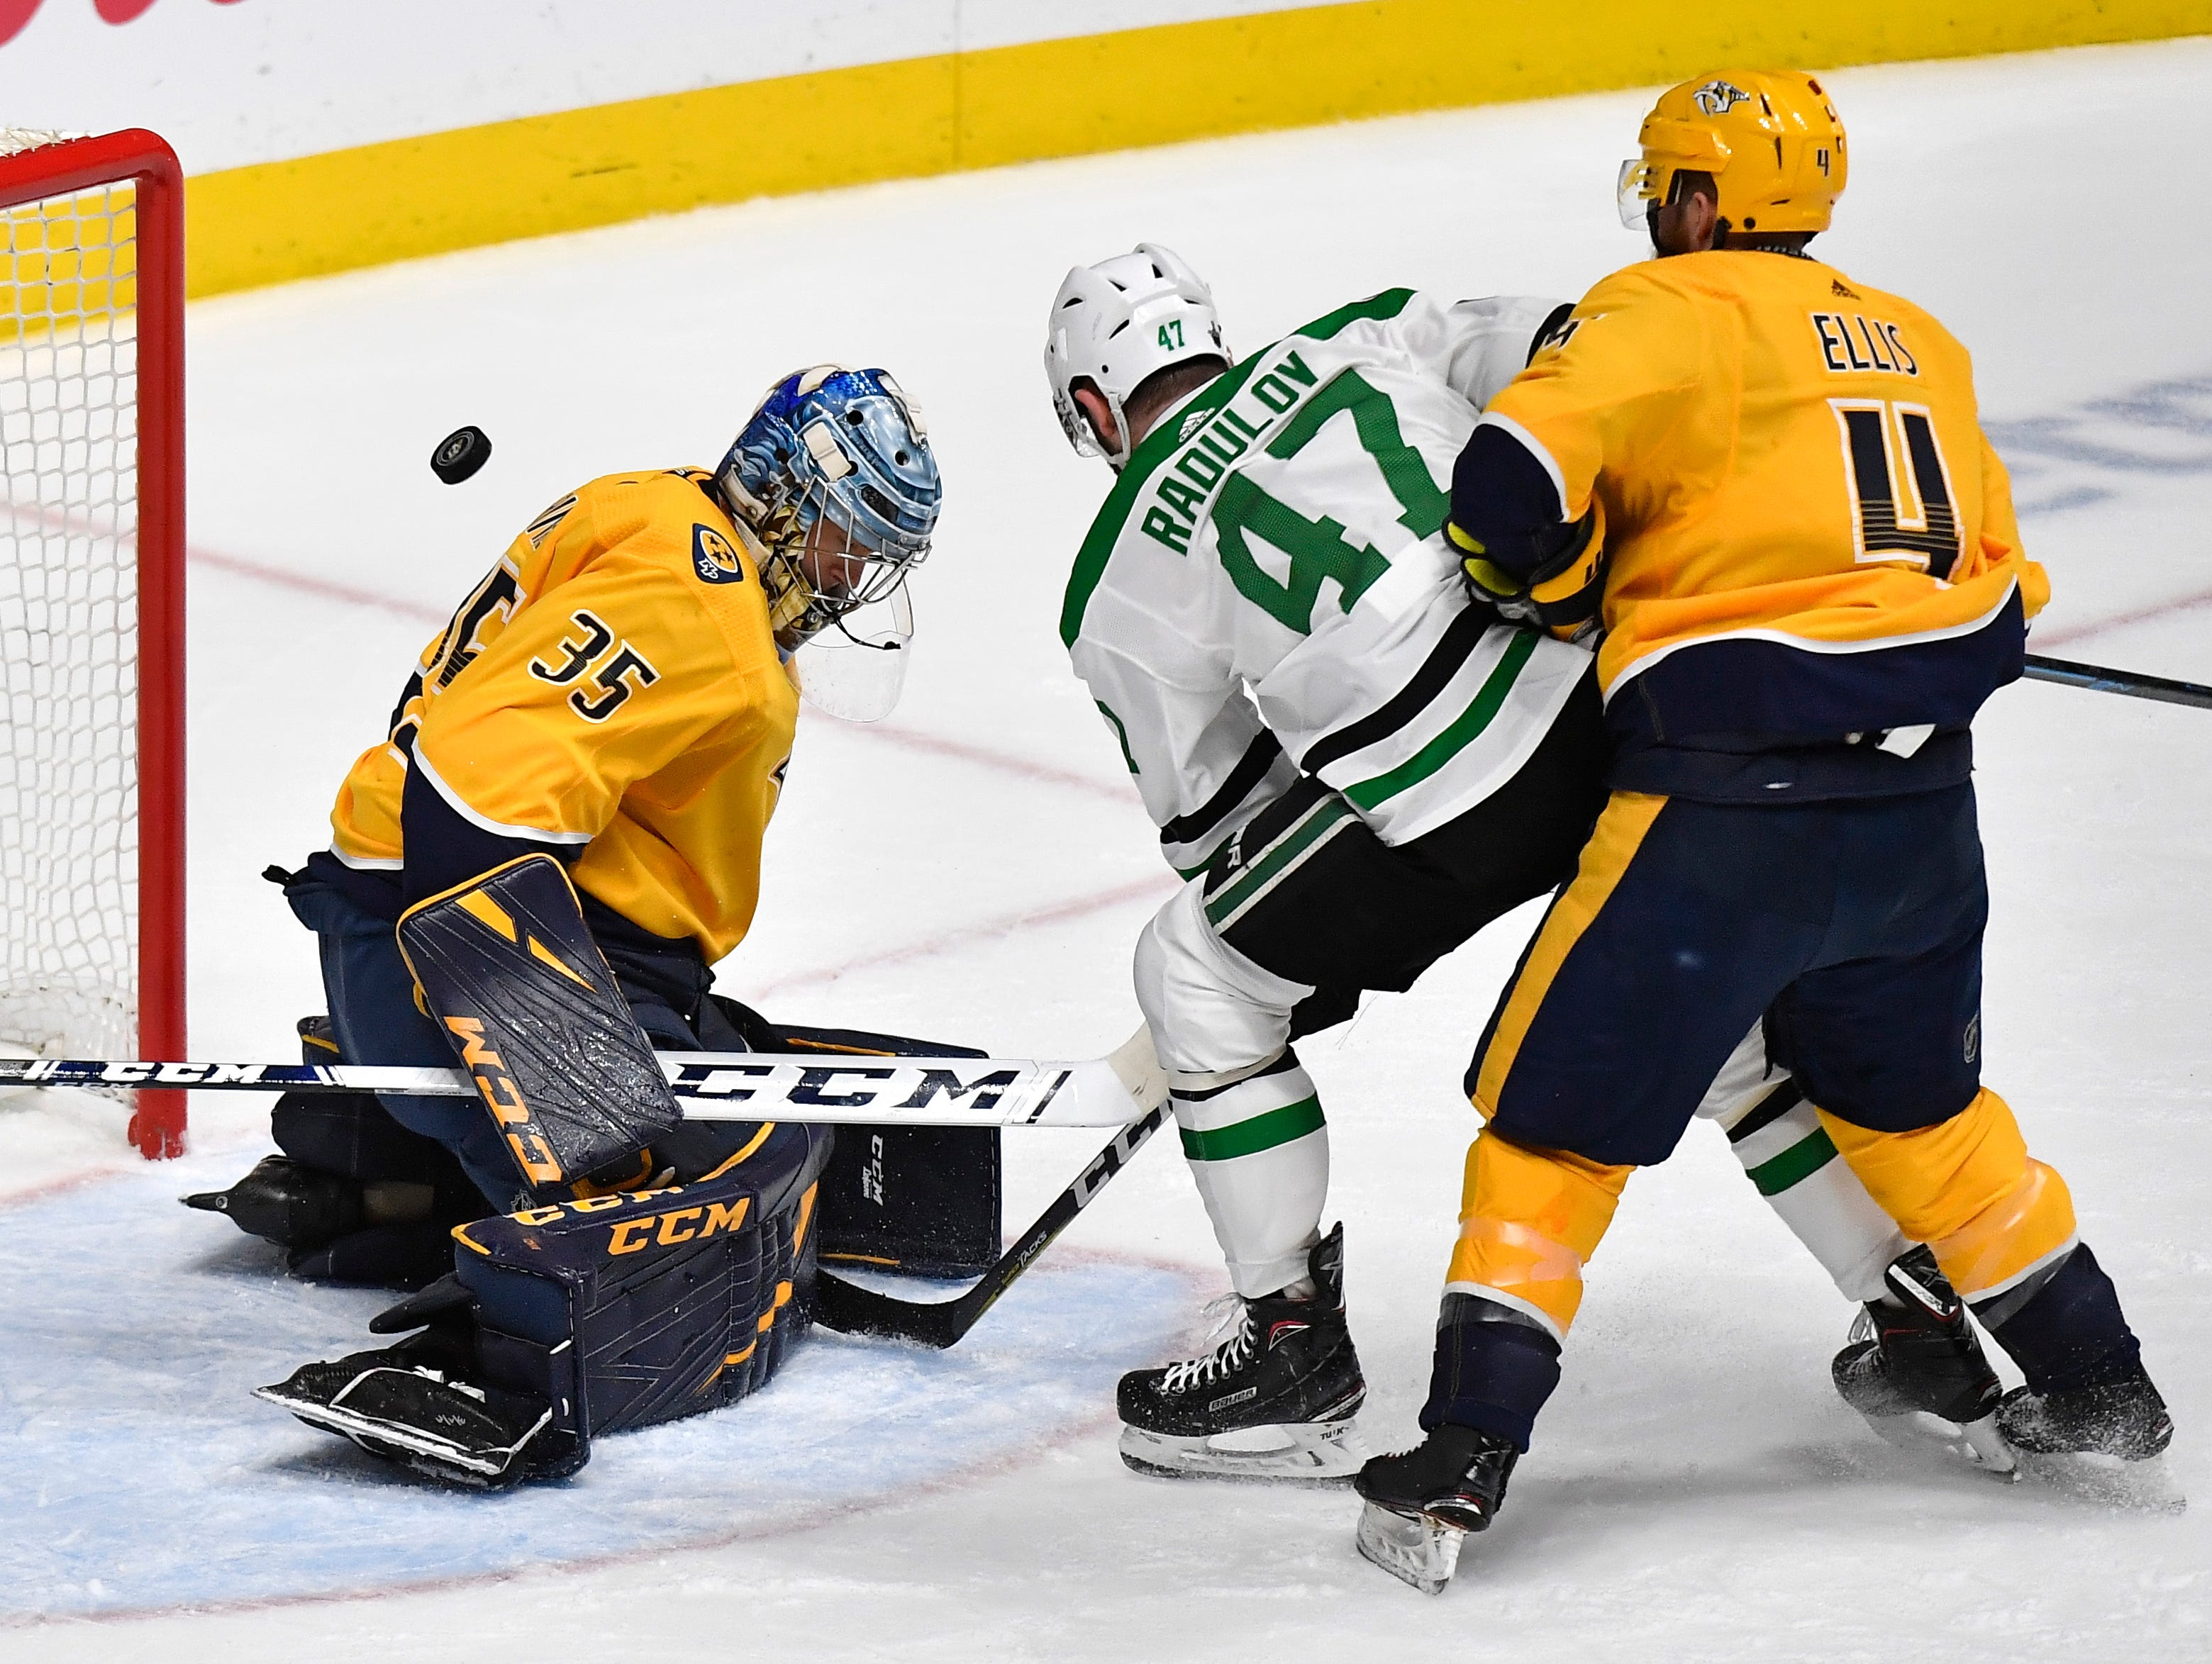 A Dallas shot goes wide of Nashville Predators goaltender Pekka Rinne (35) with Dallas Stars right wing Alexander Radulov (47) and Nashville Predators defenseman Ryan Ellis (4) in front of the net during the first period of the divisional semifinal game at Bridgestone Arena in Nashville, Tenn., Saturday, April 13, 2019.